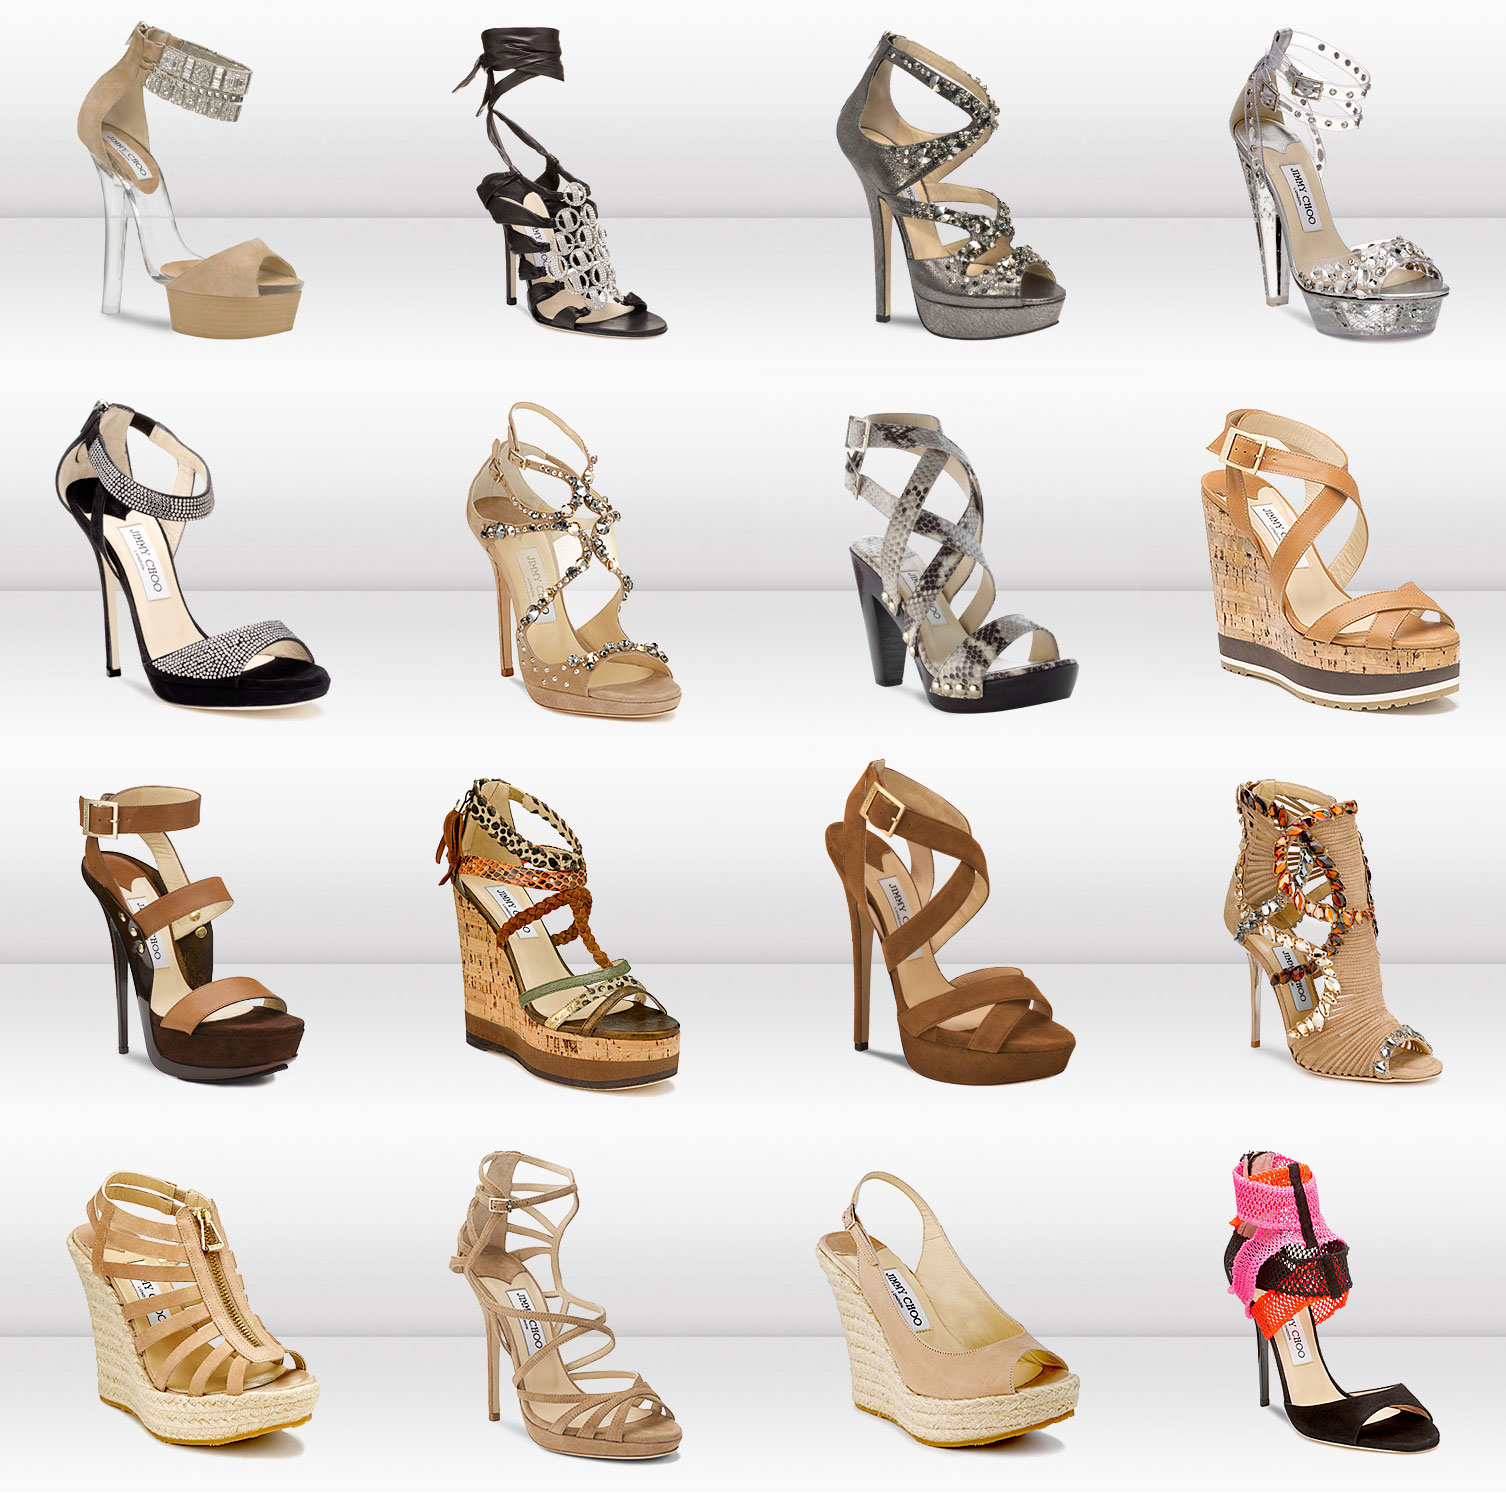 The Most Expensive Women Shoe Brands in